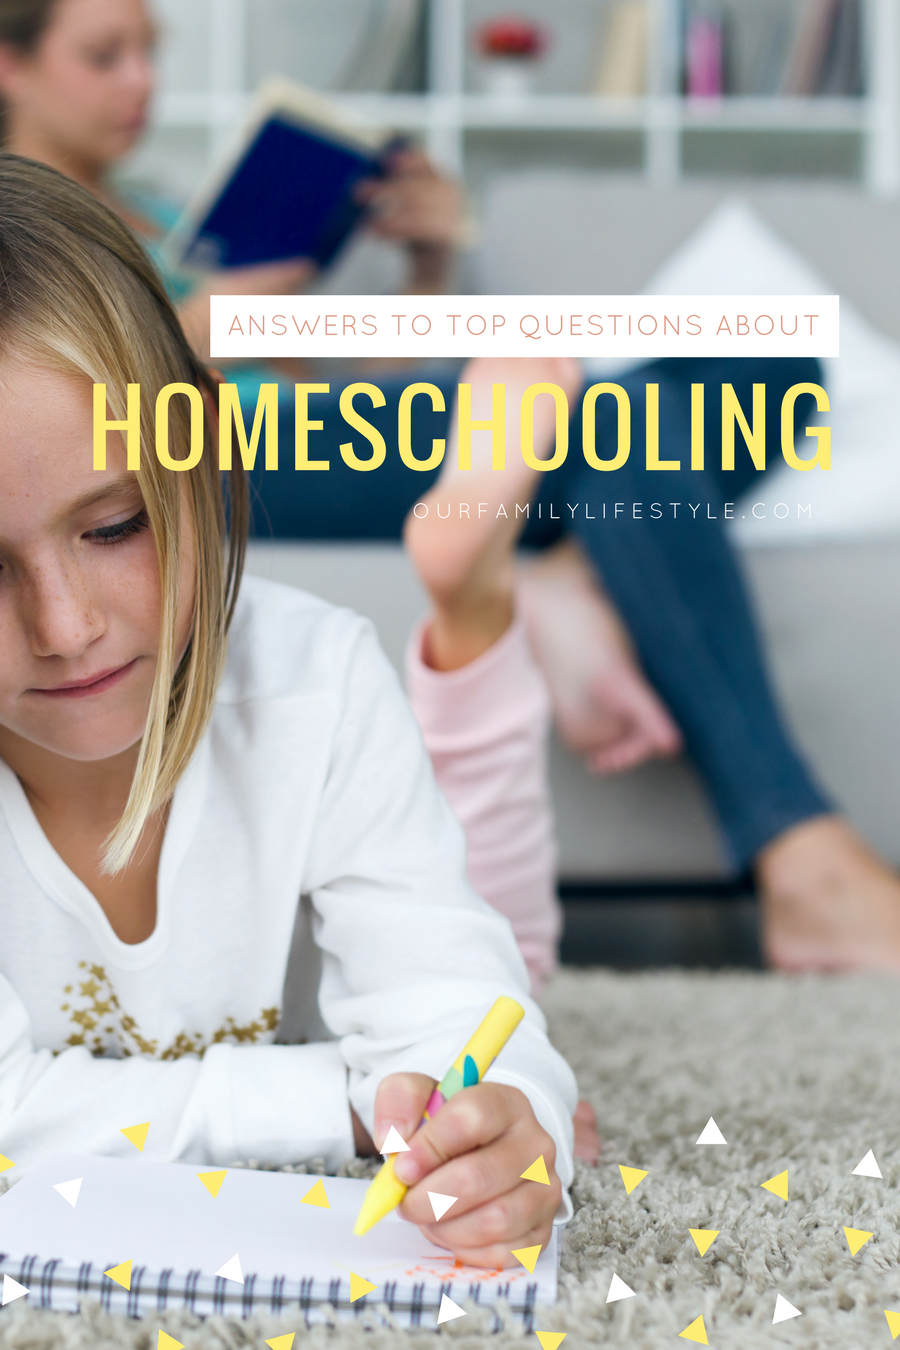 Answers to Top Questions About Homeschooling